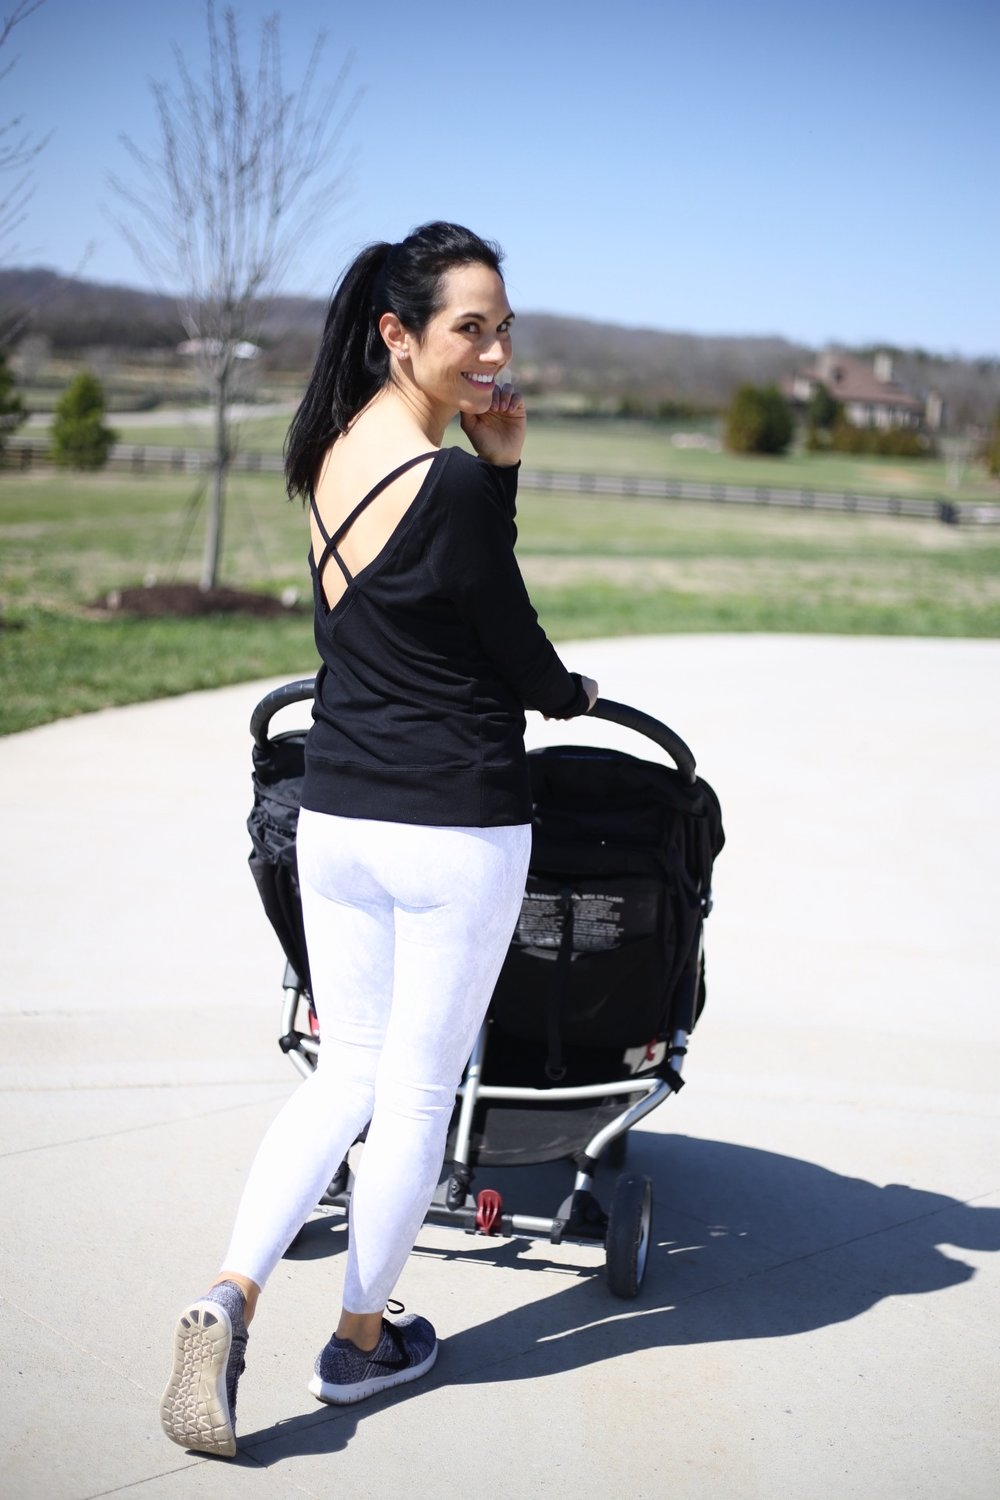 Alo leggings  |  Nike sneakers  |  Zella top similar  |  double stroller  | image : Sydney Clawson |